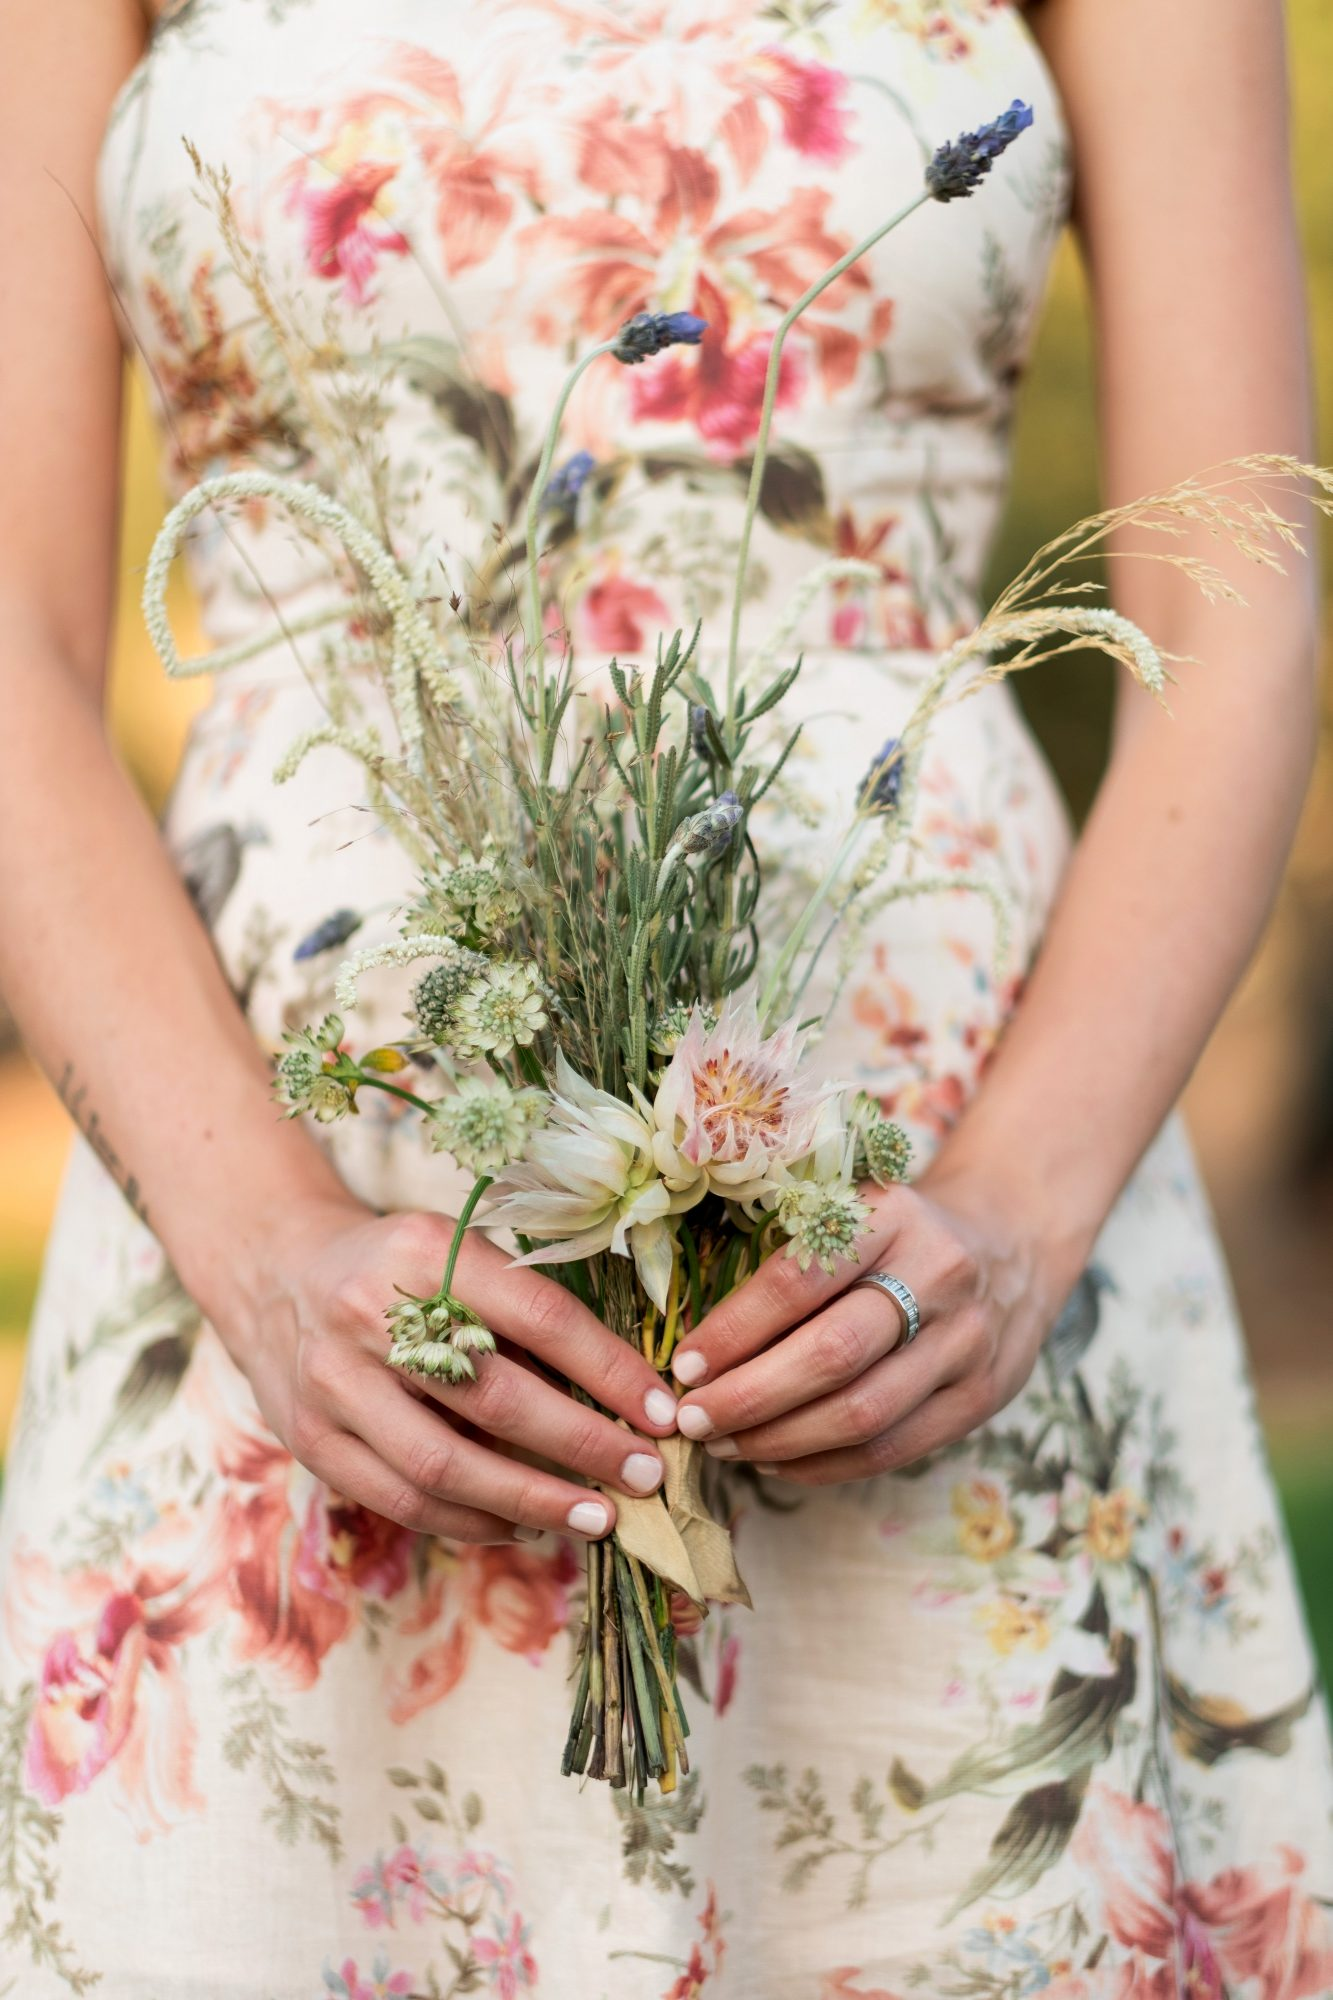 anika max wedding bridesmaid wearing floral dress holding bouquet